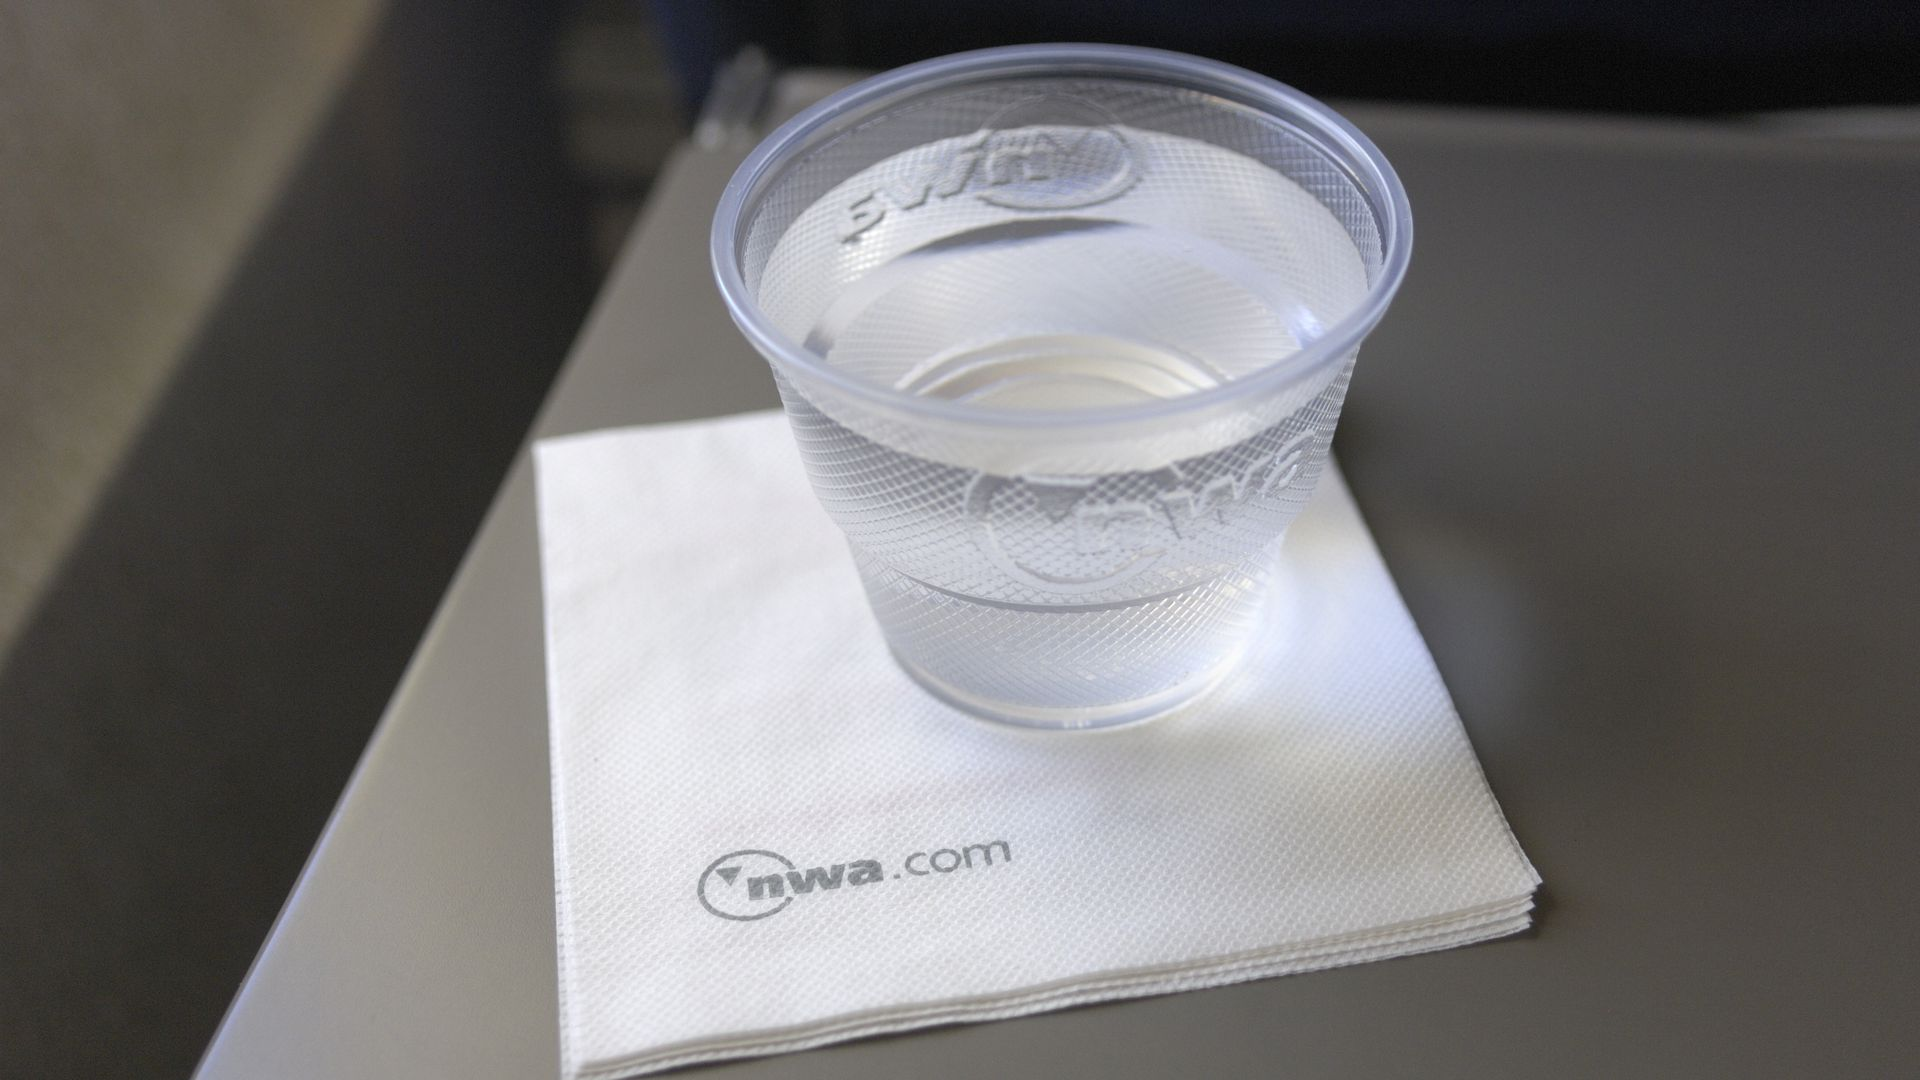 A cup of water on an airplane